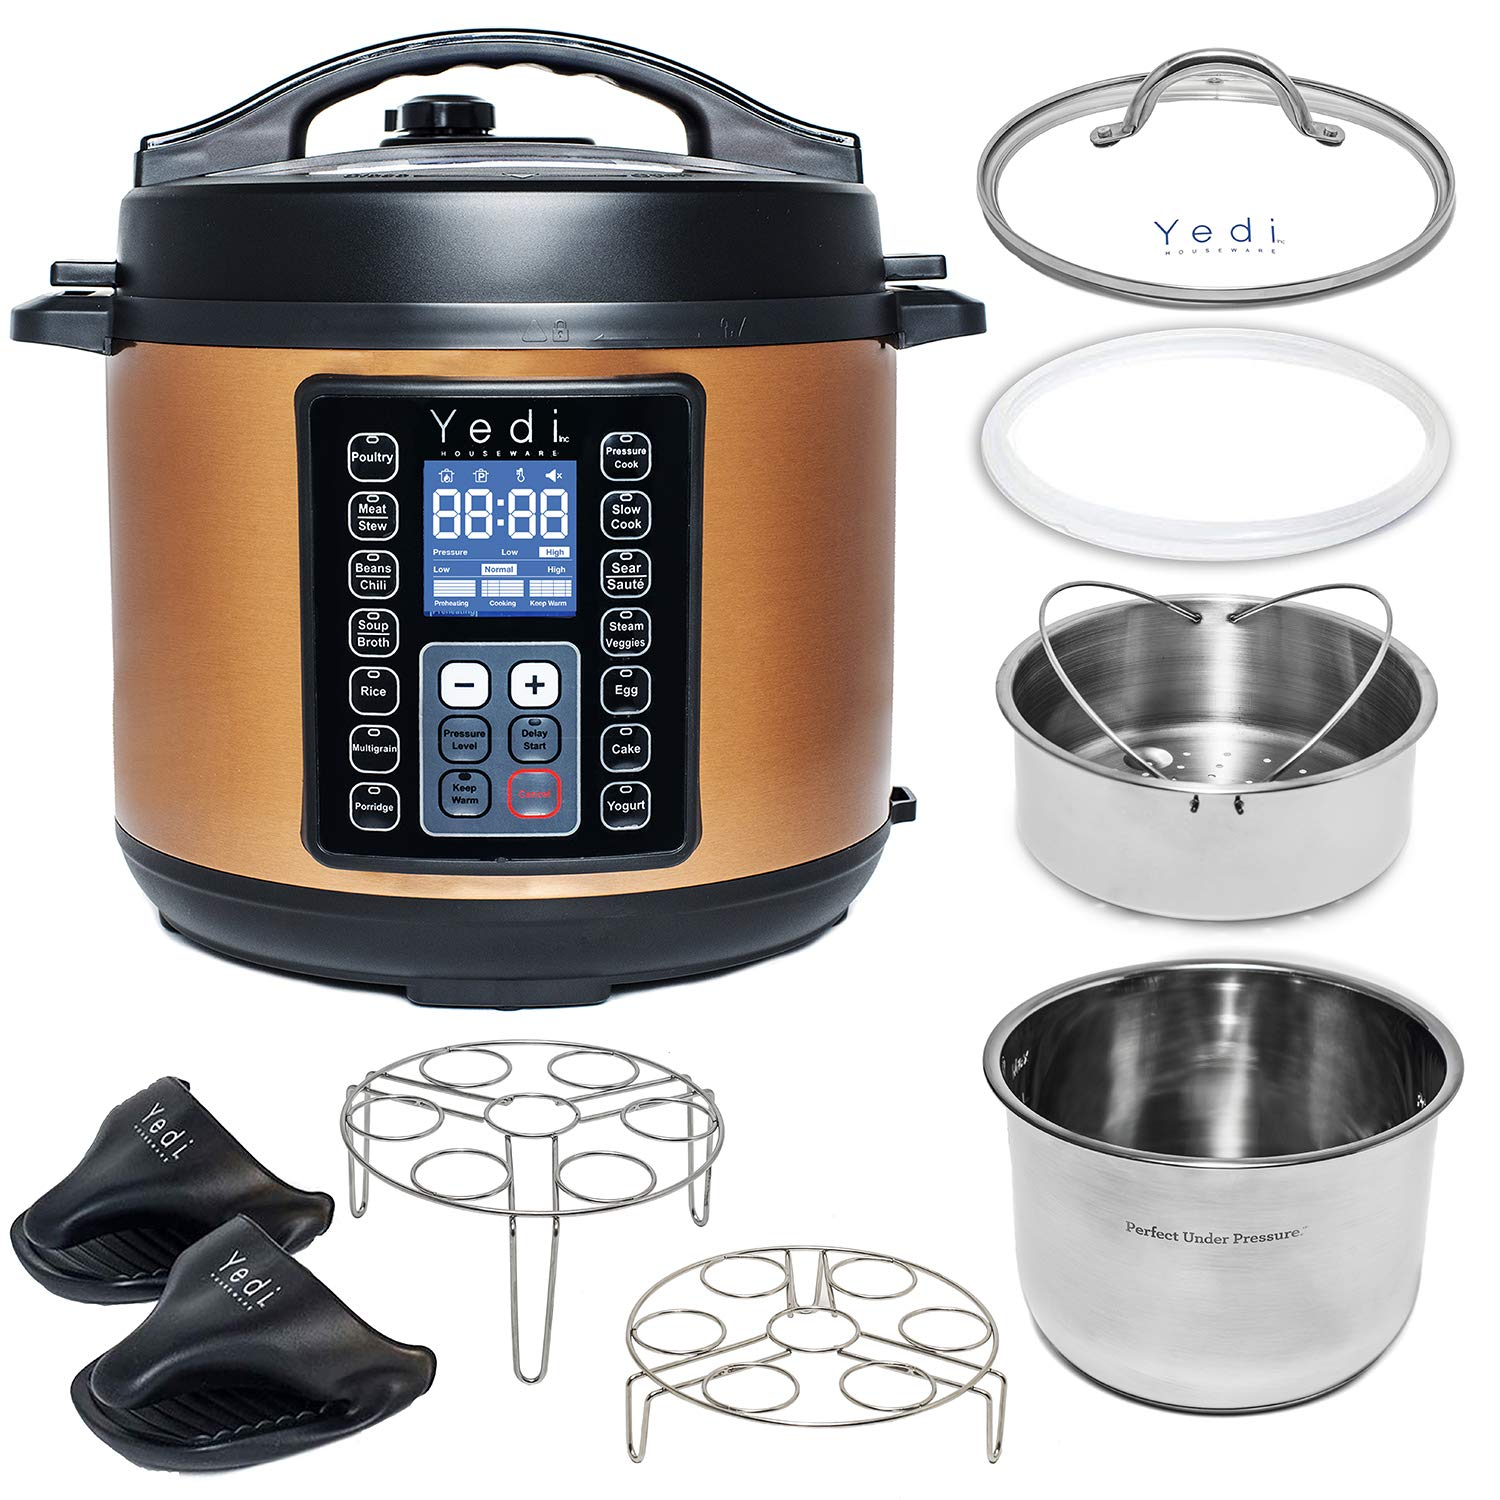 Yedi Total Package 9-in-1 Instant Programmable Pressure Cooker